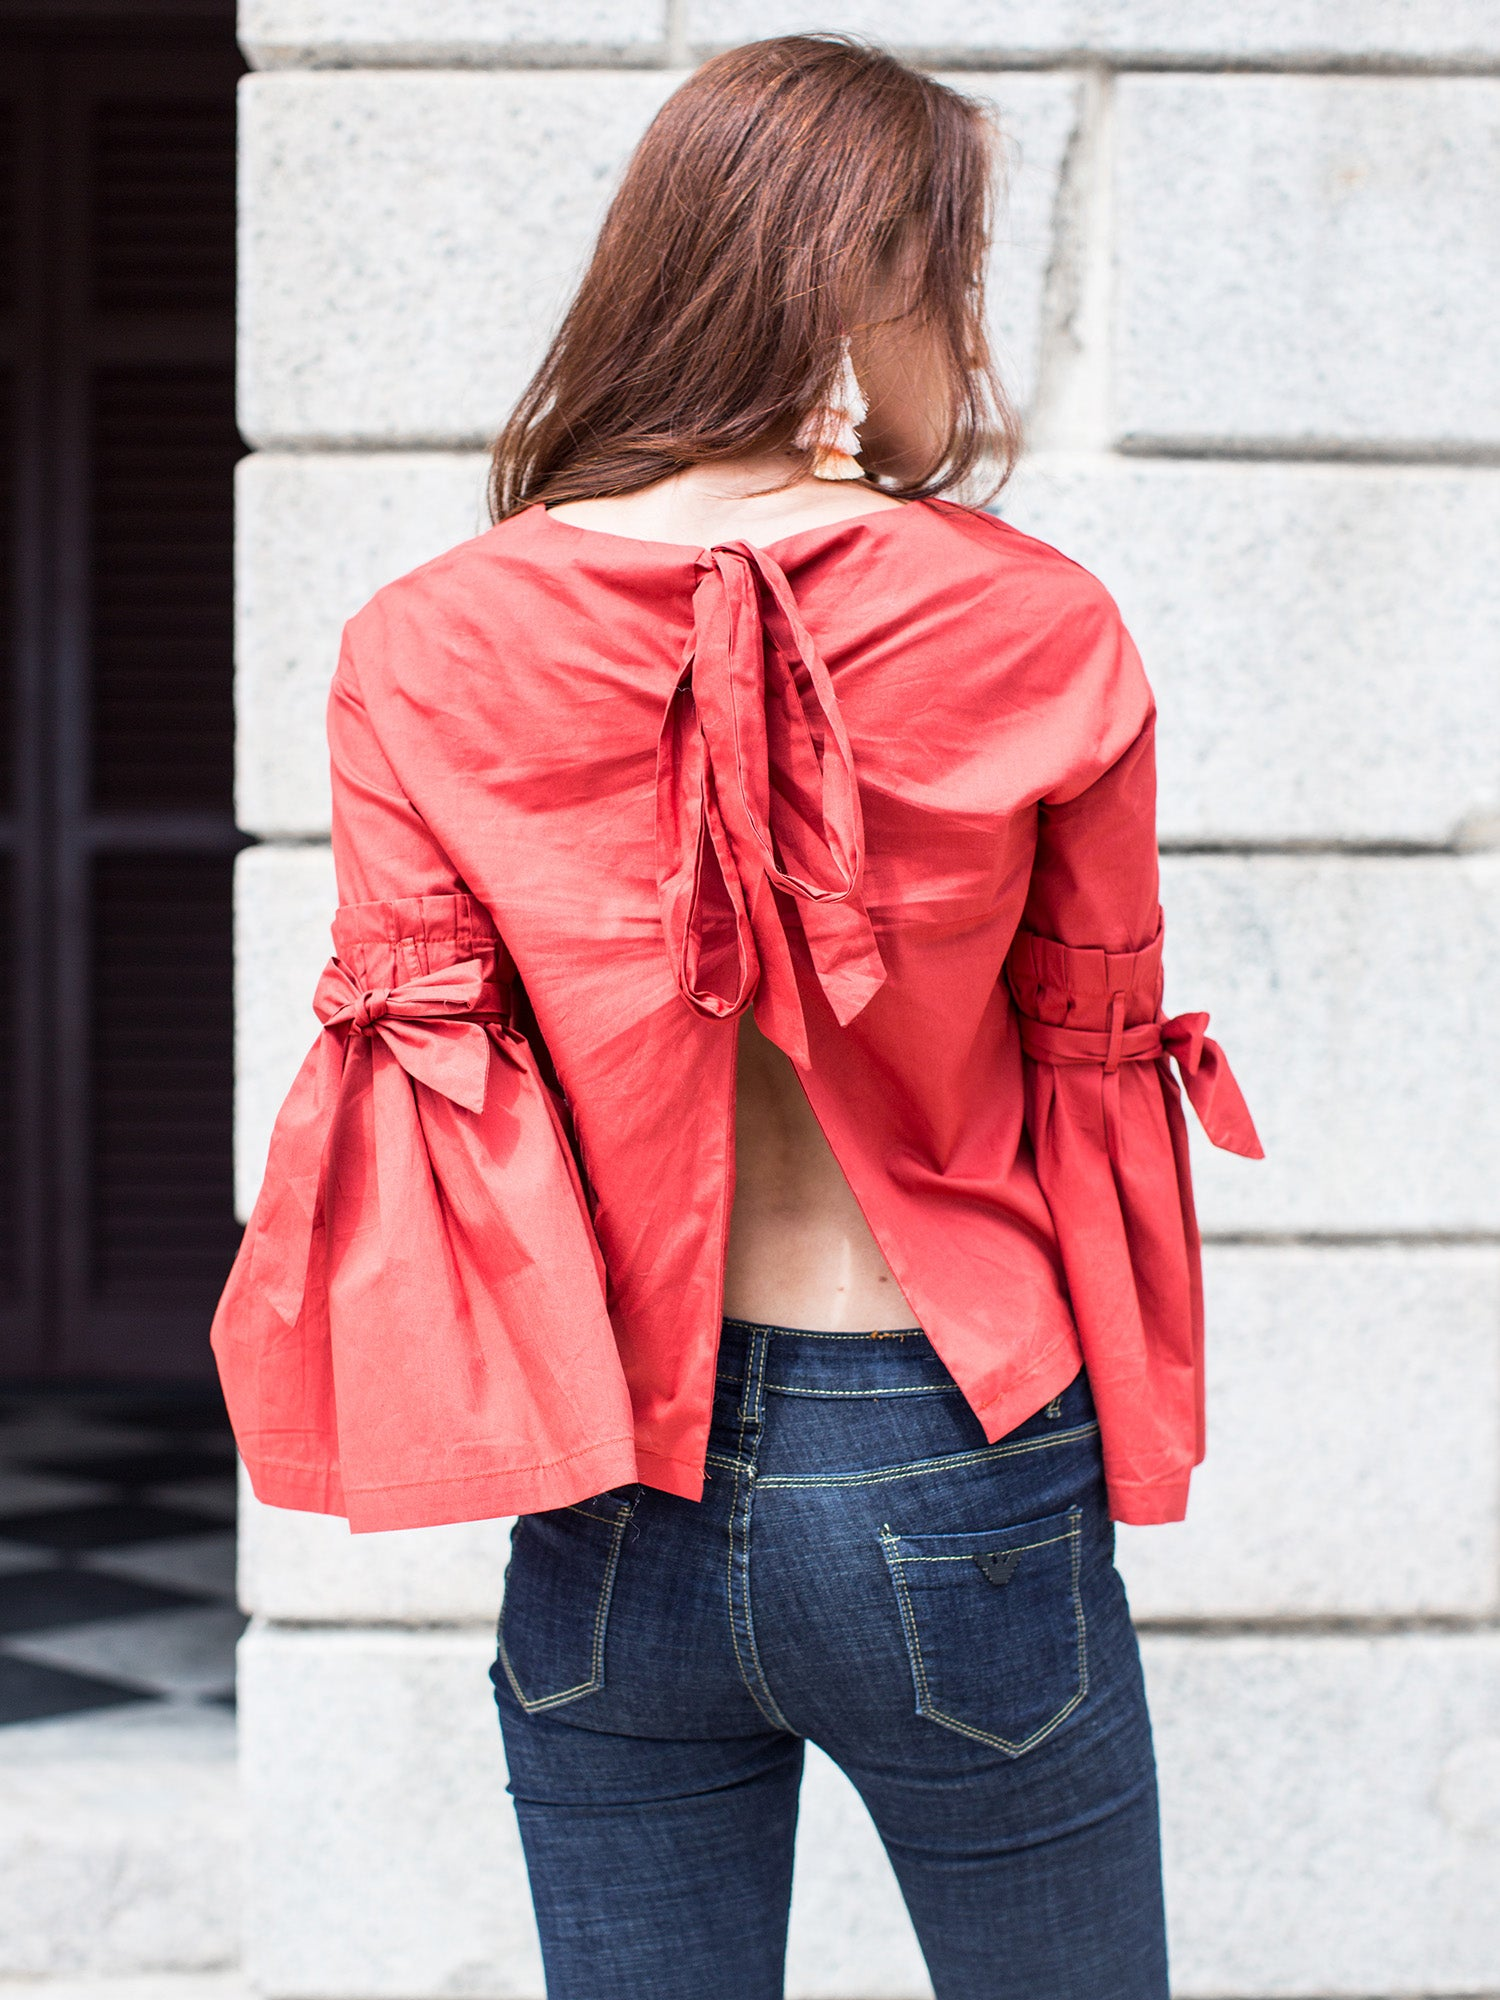 'Sheila' Red Tied Sleeve Top